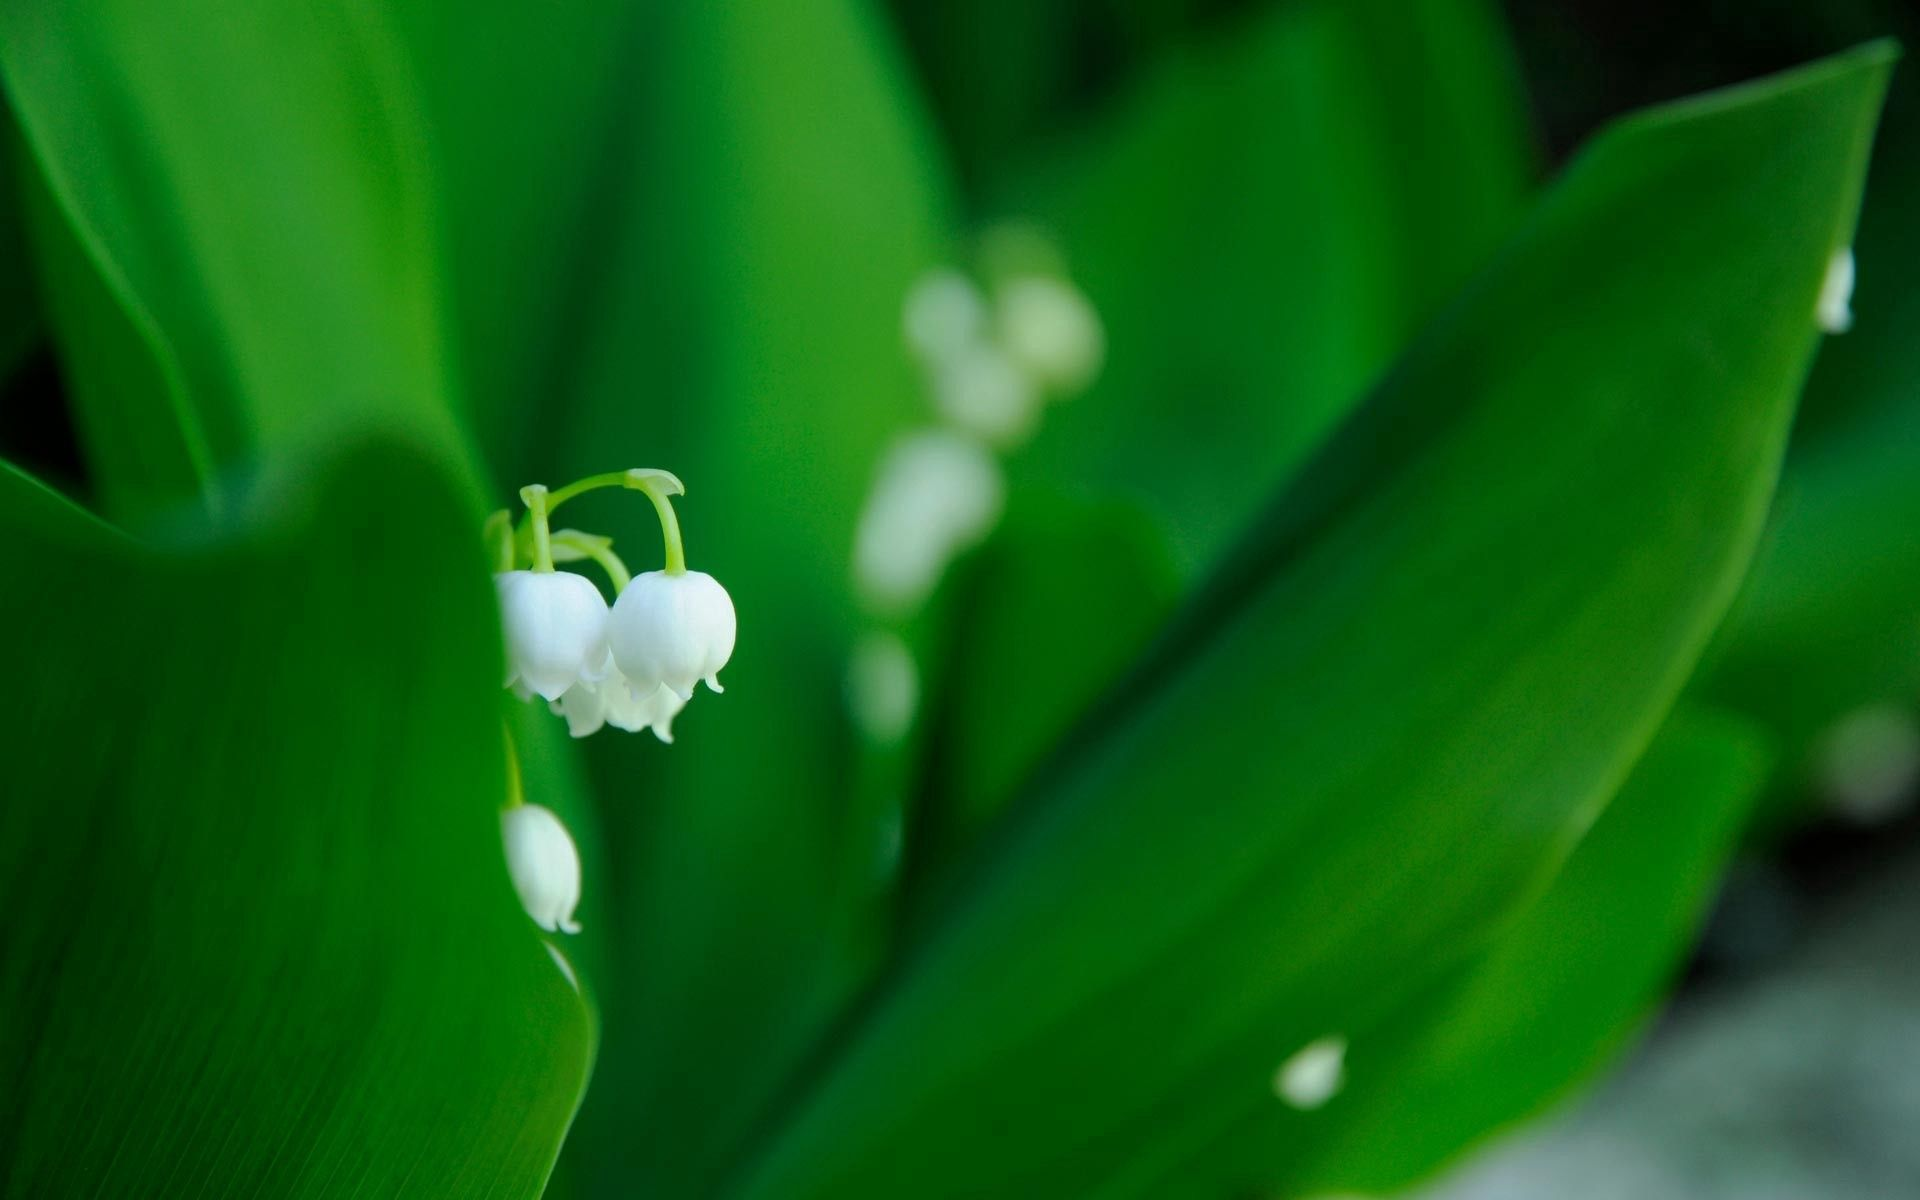 95266 download wallpaper Macro, Leaves, Grass, Plant, Flowers, Lily Of The Valley screensavers and pictures for free